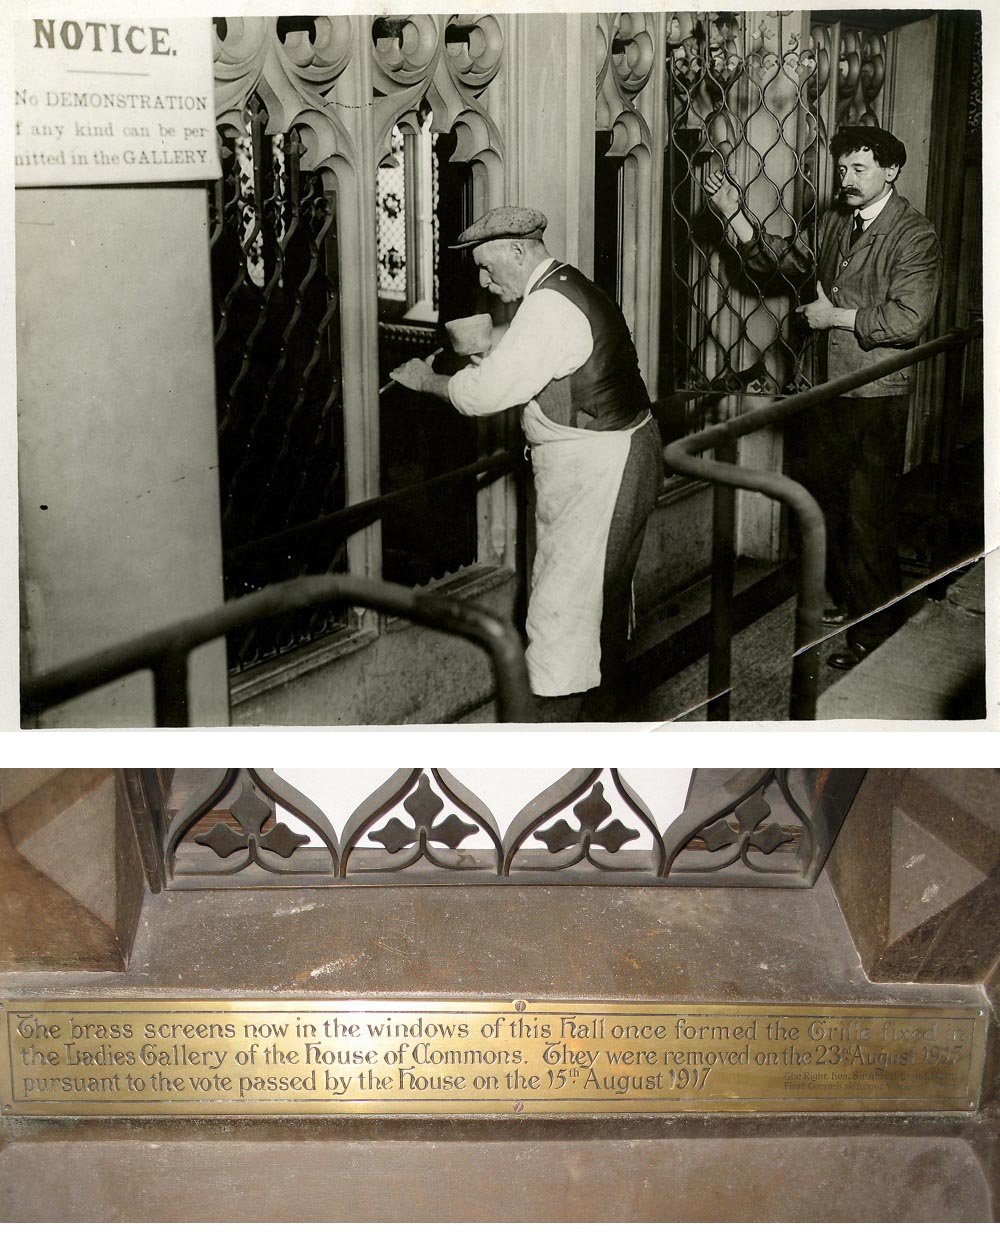 a composite photo showing a man with a moustached removing iron grilles and a photo of a brass plaque next to a grille set in a stone window